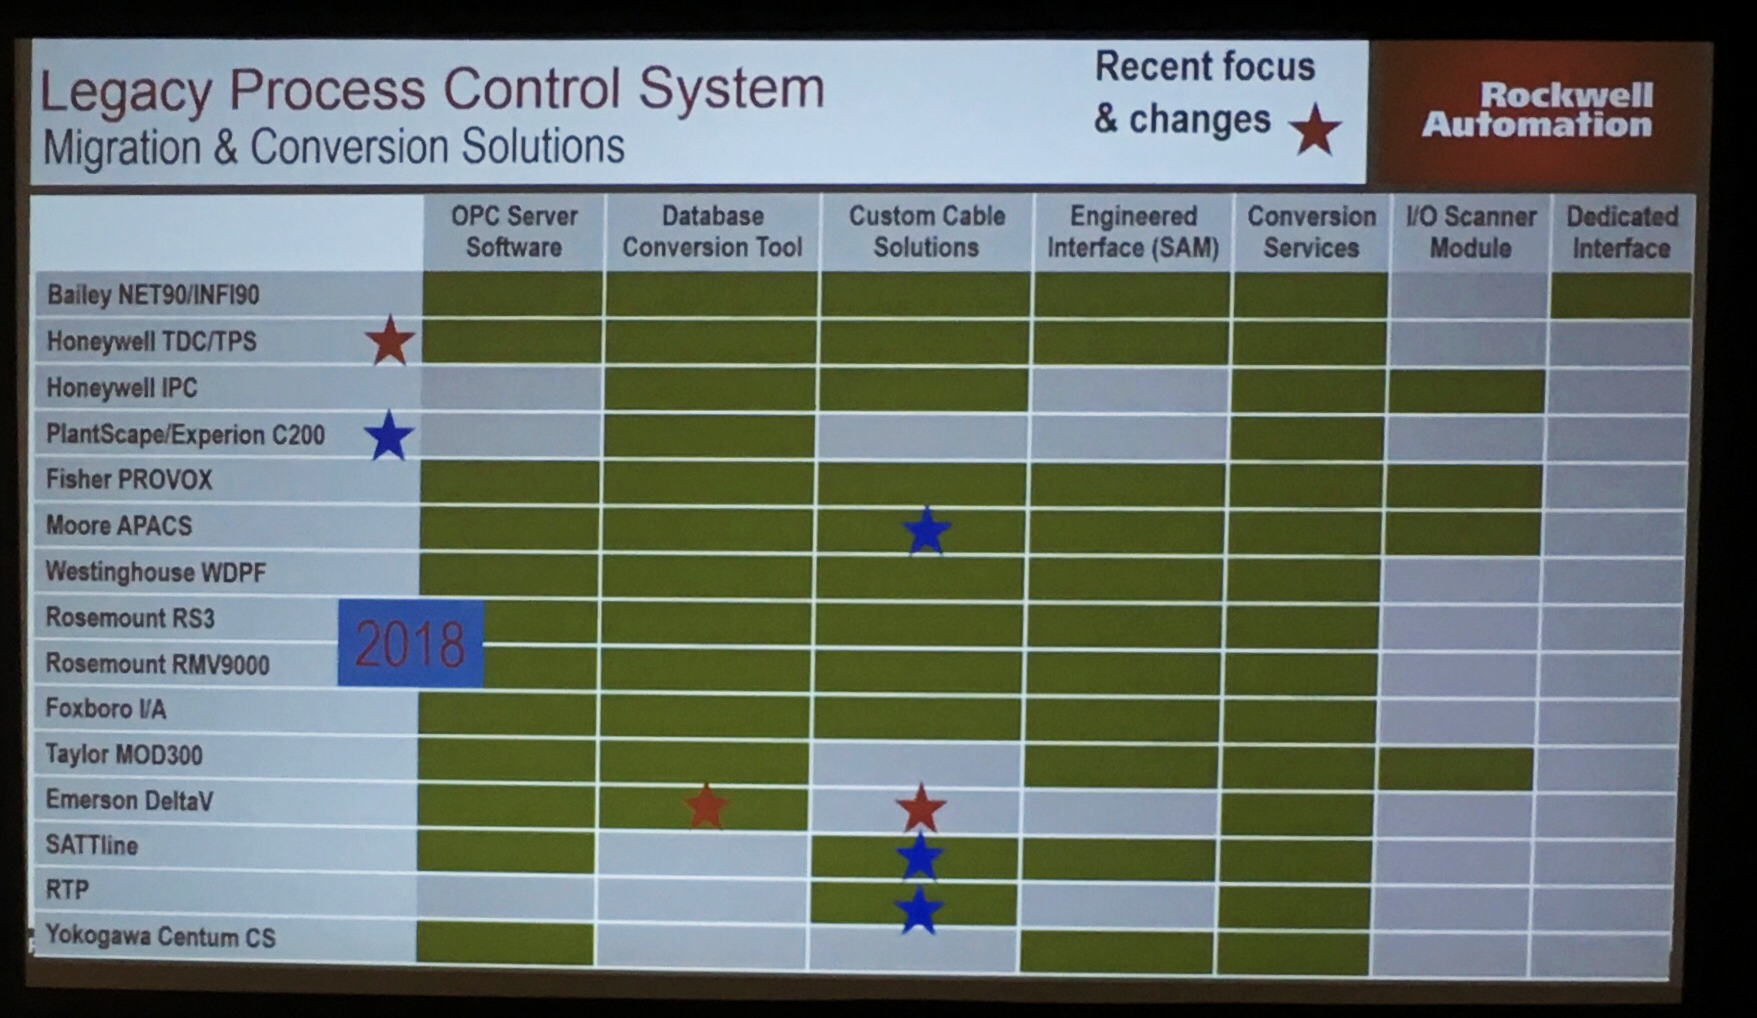 Legacy Process Control System